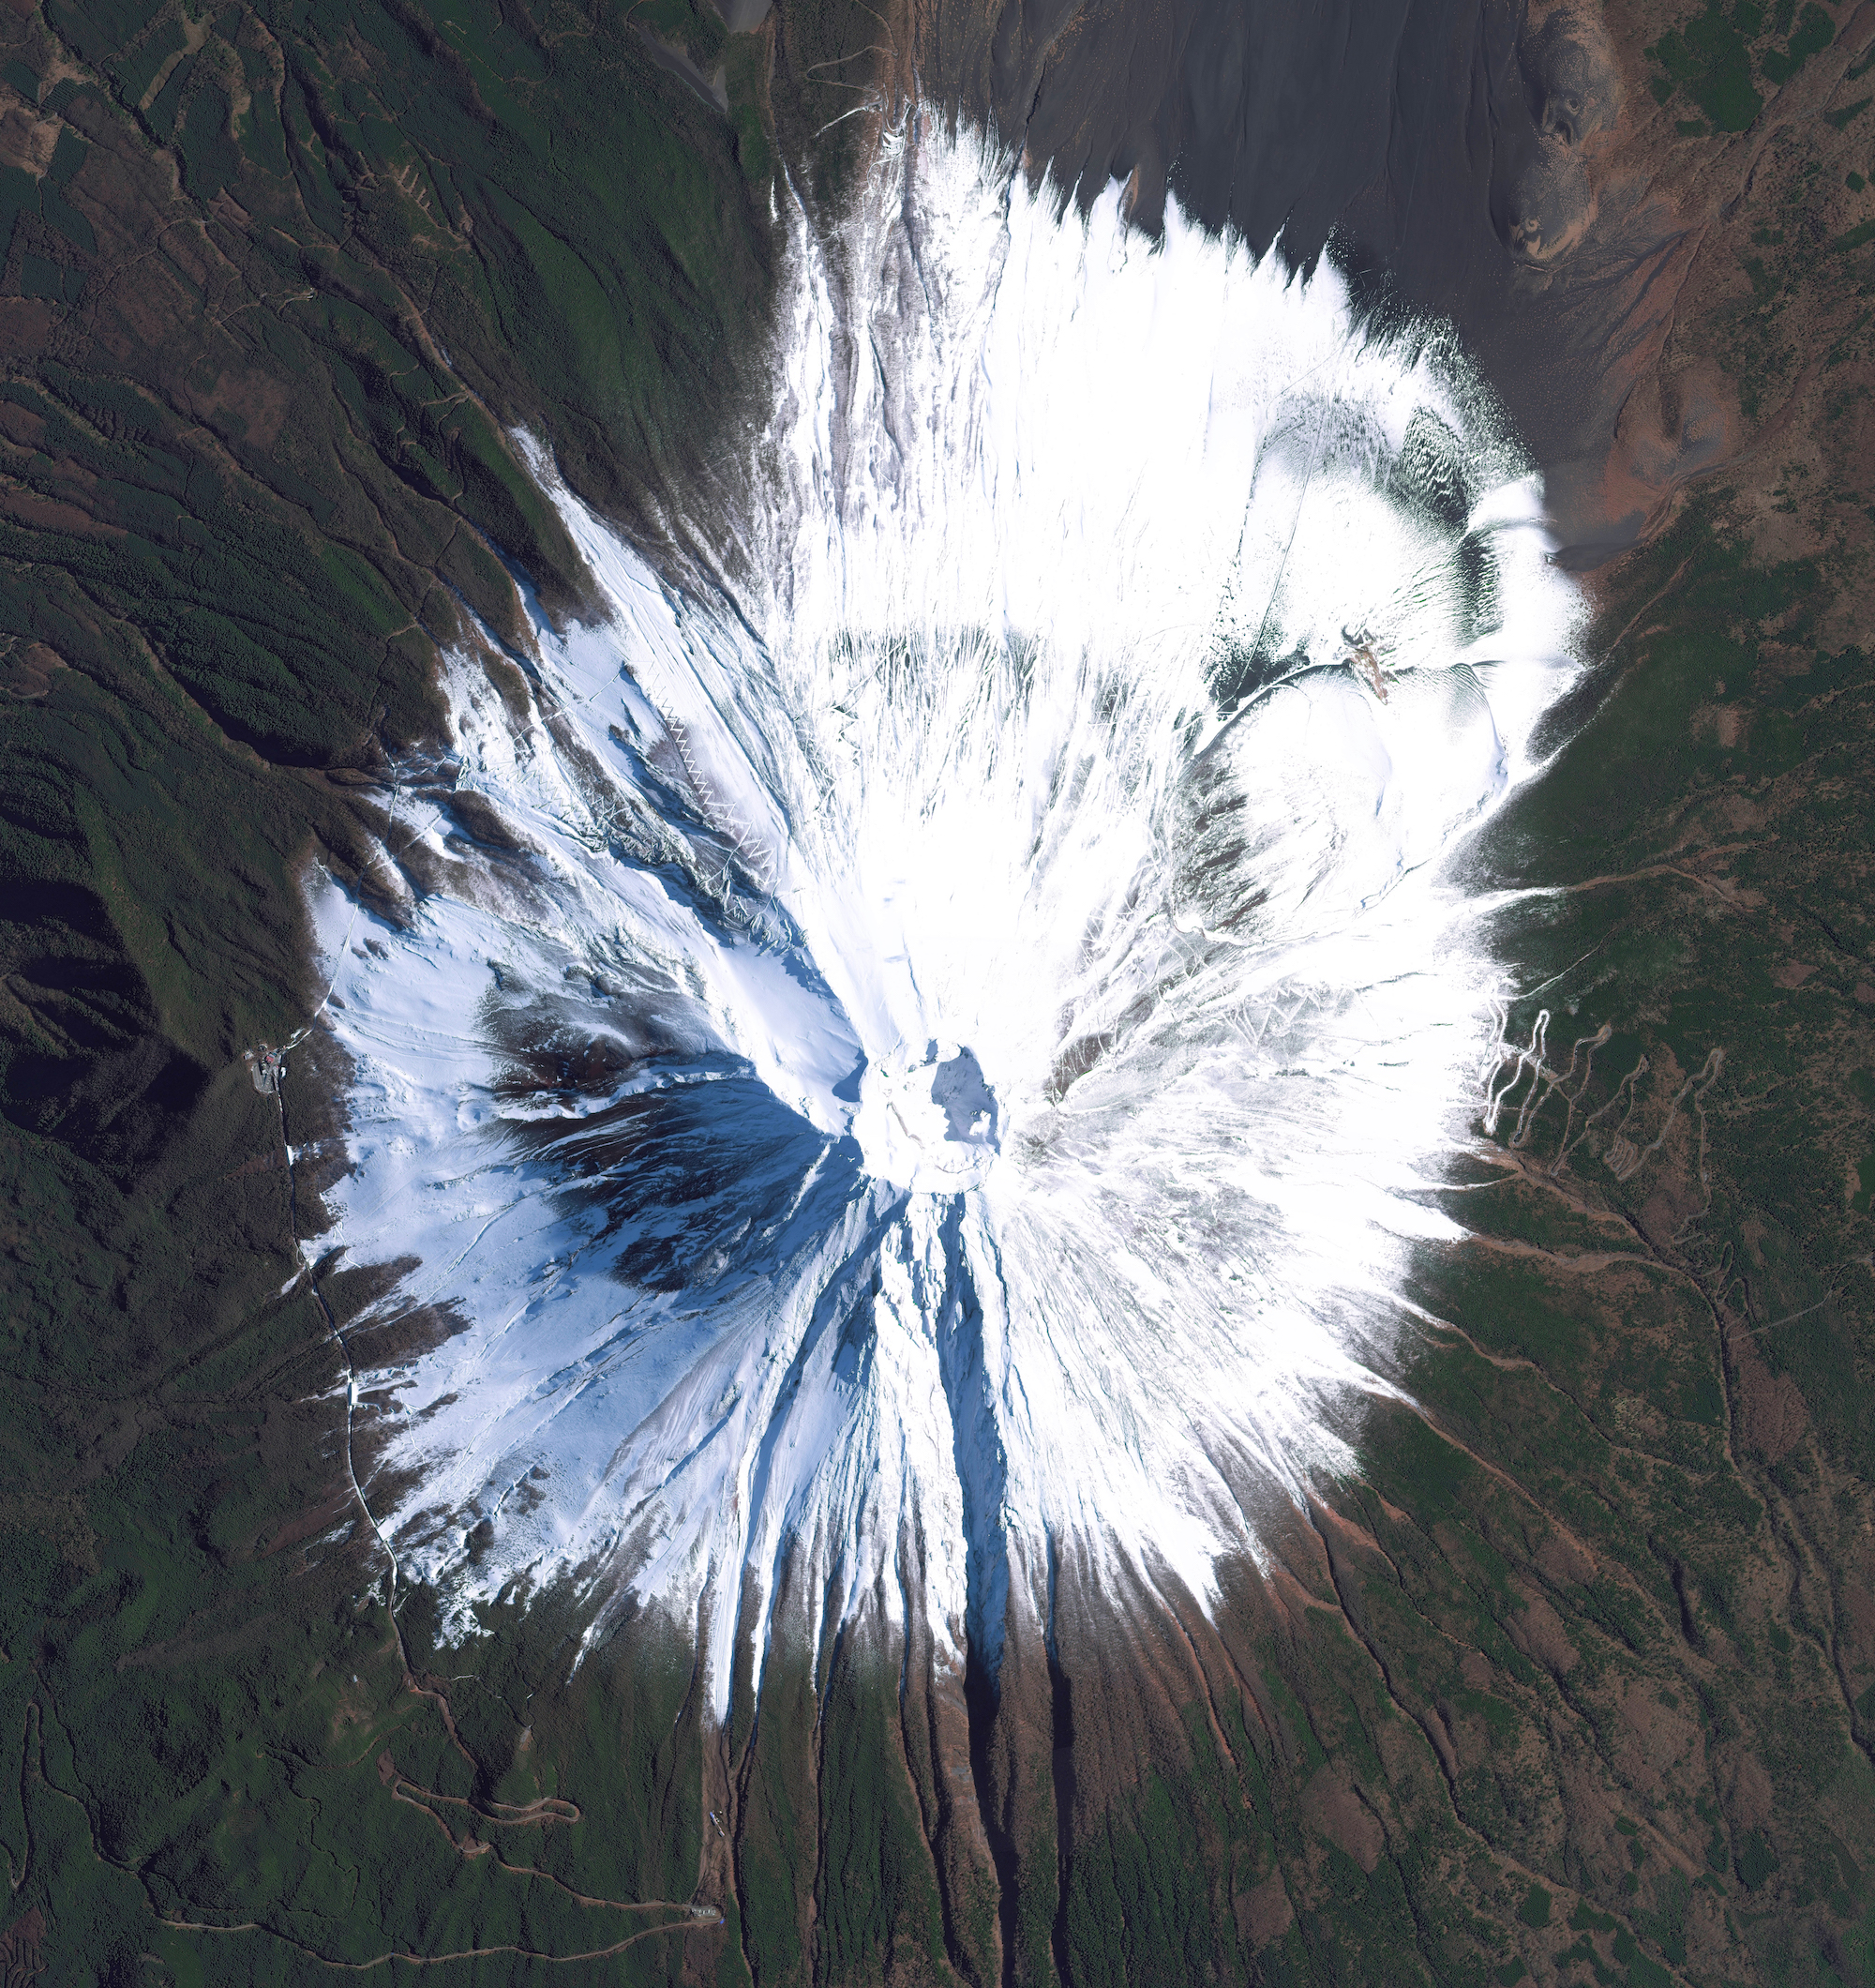 """Our new book """"Overview"""" contains 70 images that have never been posted on our feed before! Here's one that captures the natural beauty of Mount Fuji —an active stratovolcano and the tallest peak in Japan, rising 3,776 meters (12,389 feet). As seen in this Overview, Fuji has an extremely symmetrical cone, which is snow‑capped several months of the year. During warmer months, climbing routes make it possible for hundreds of thousands of people to scale the volcano each year."""